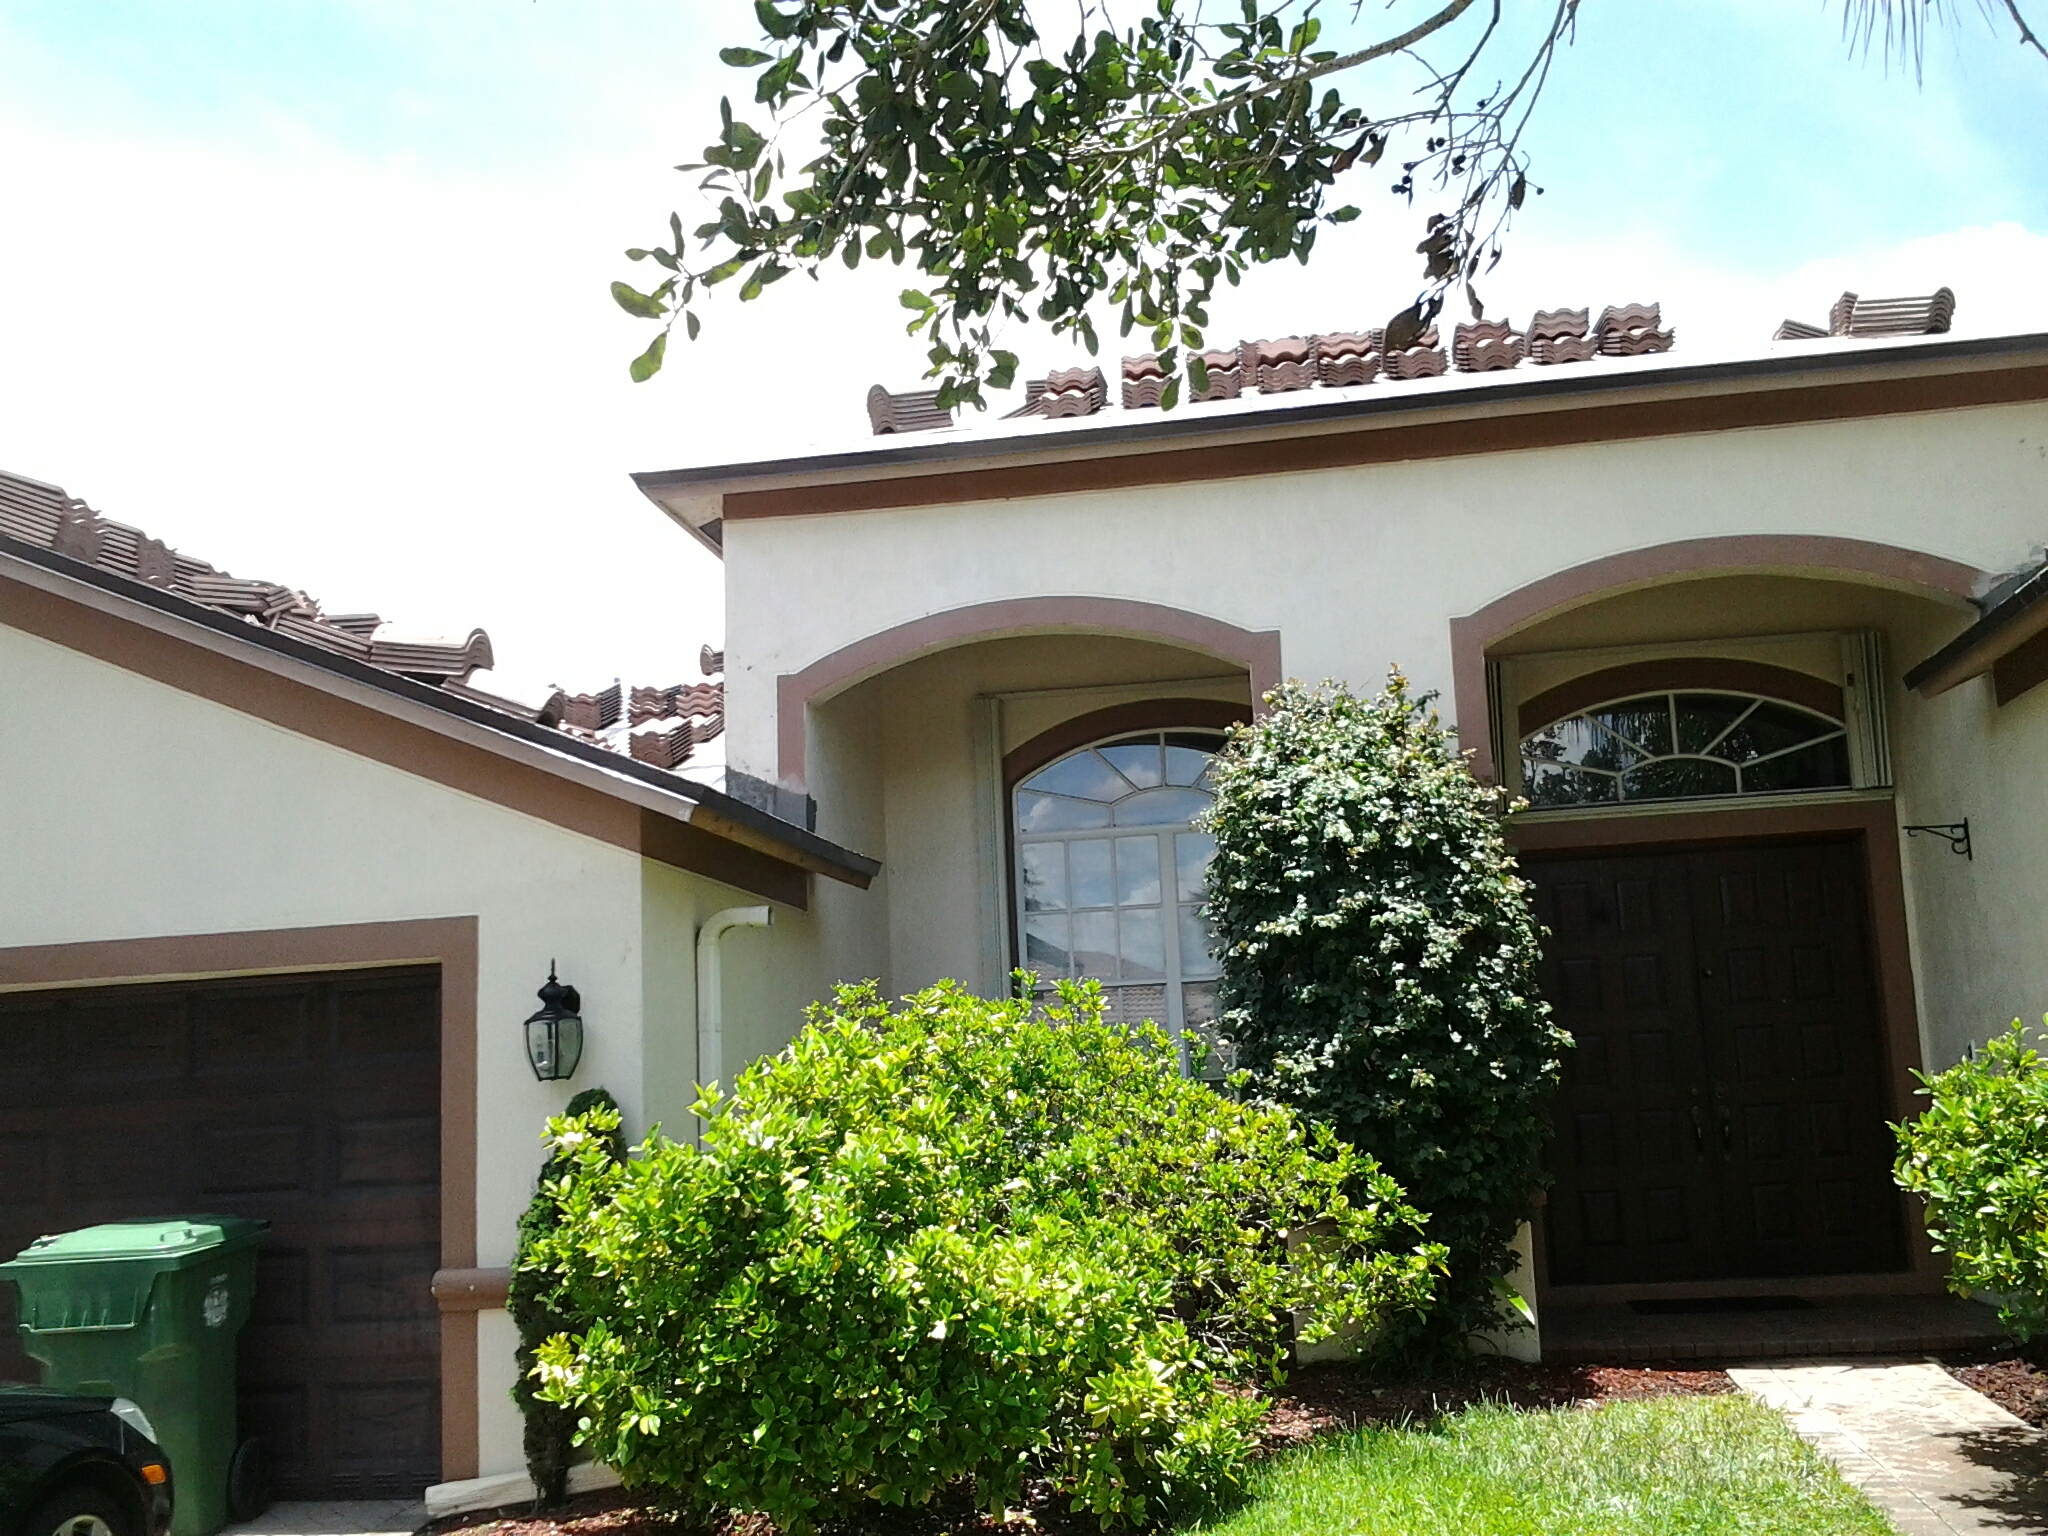 Weston, FL - Stucco work on roof